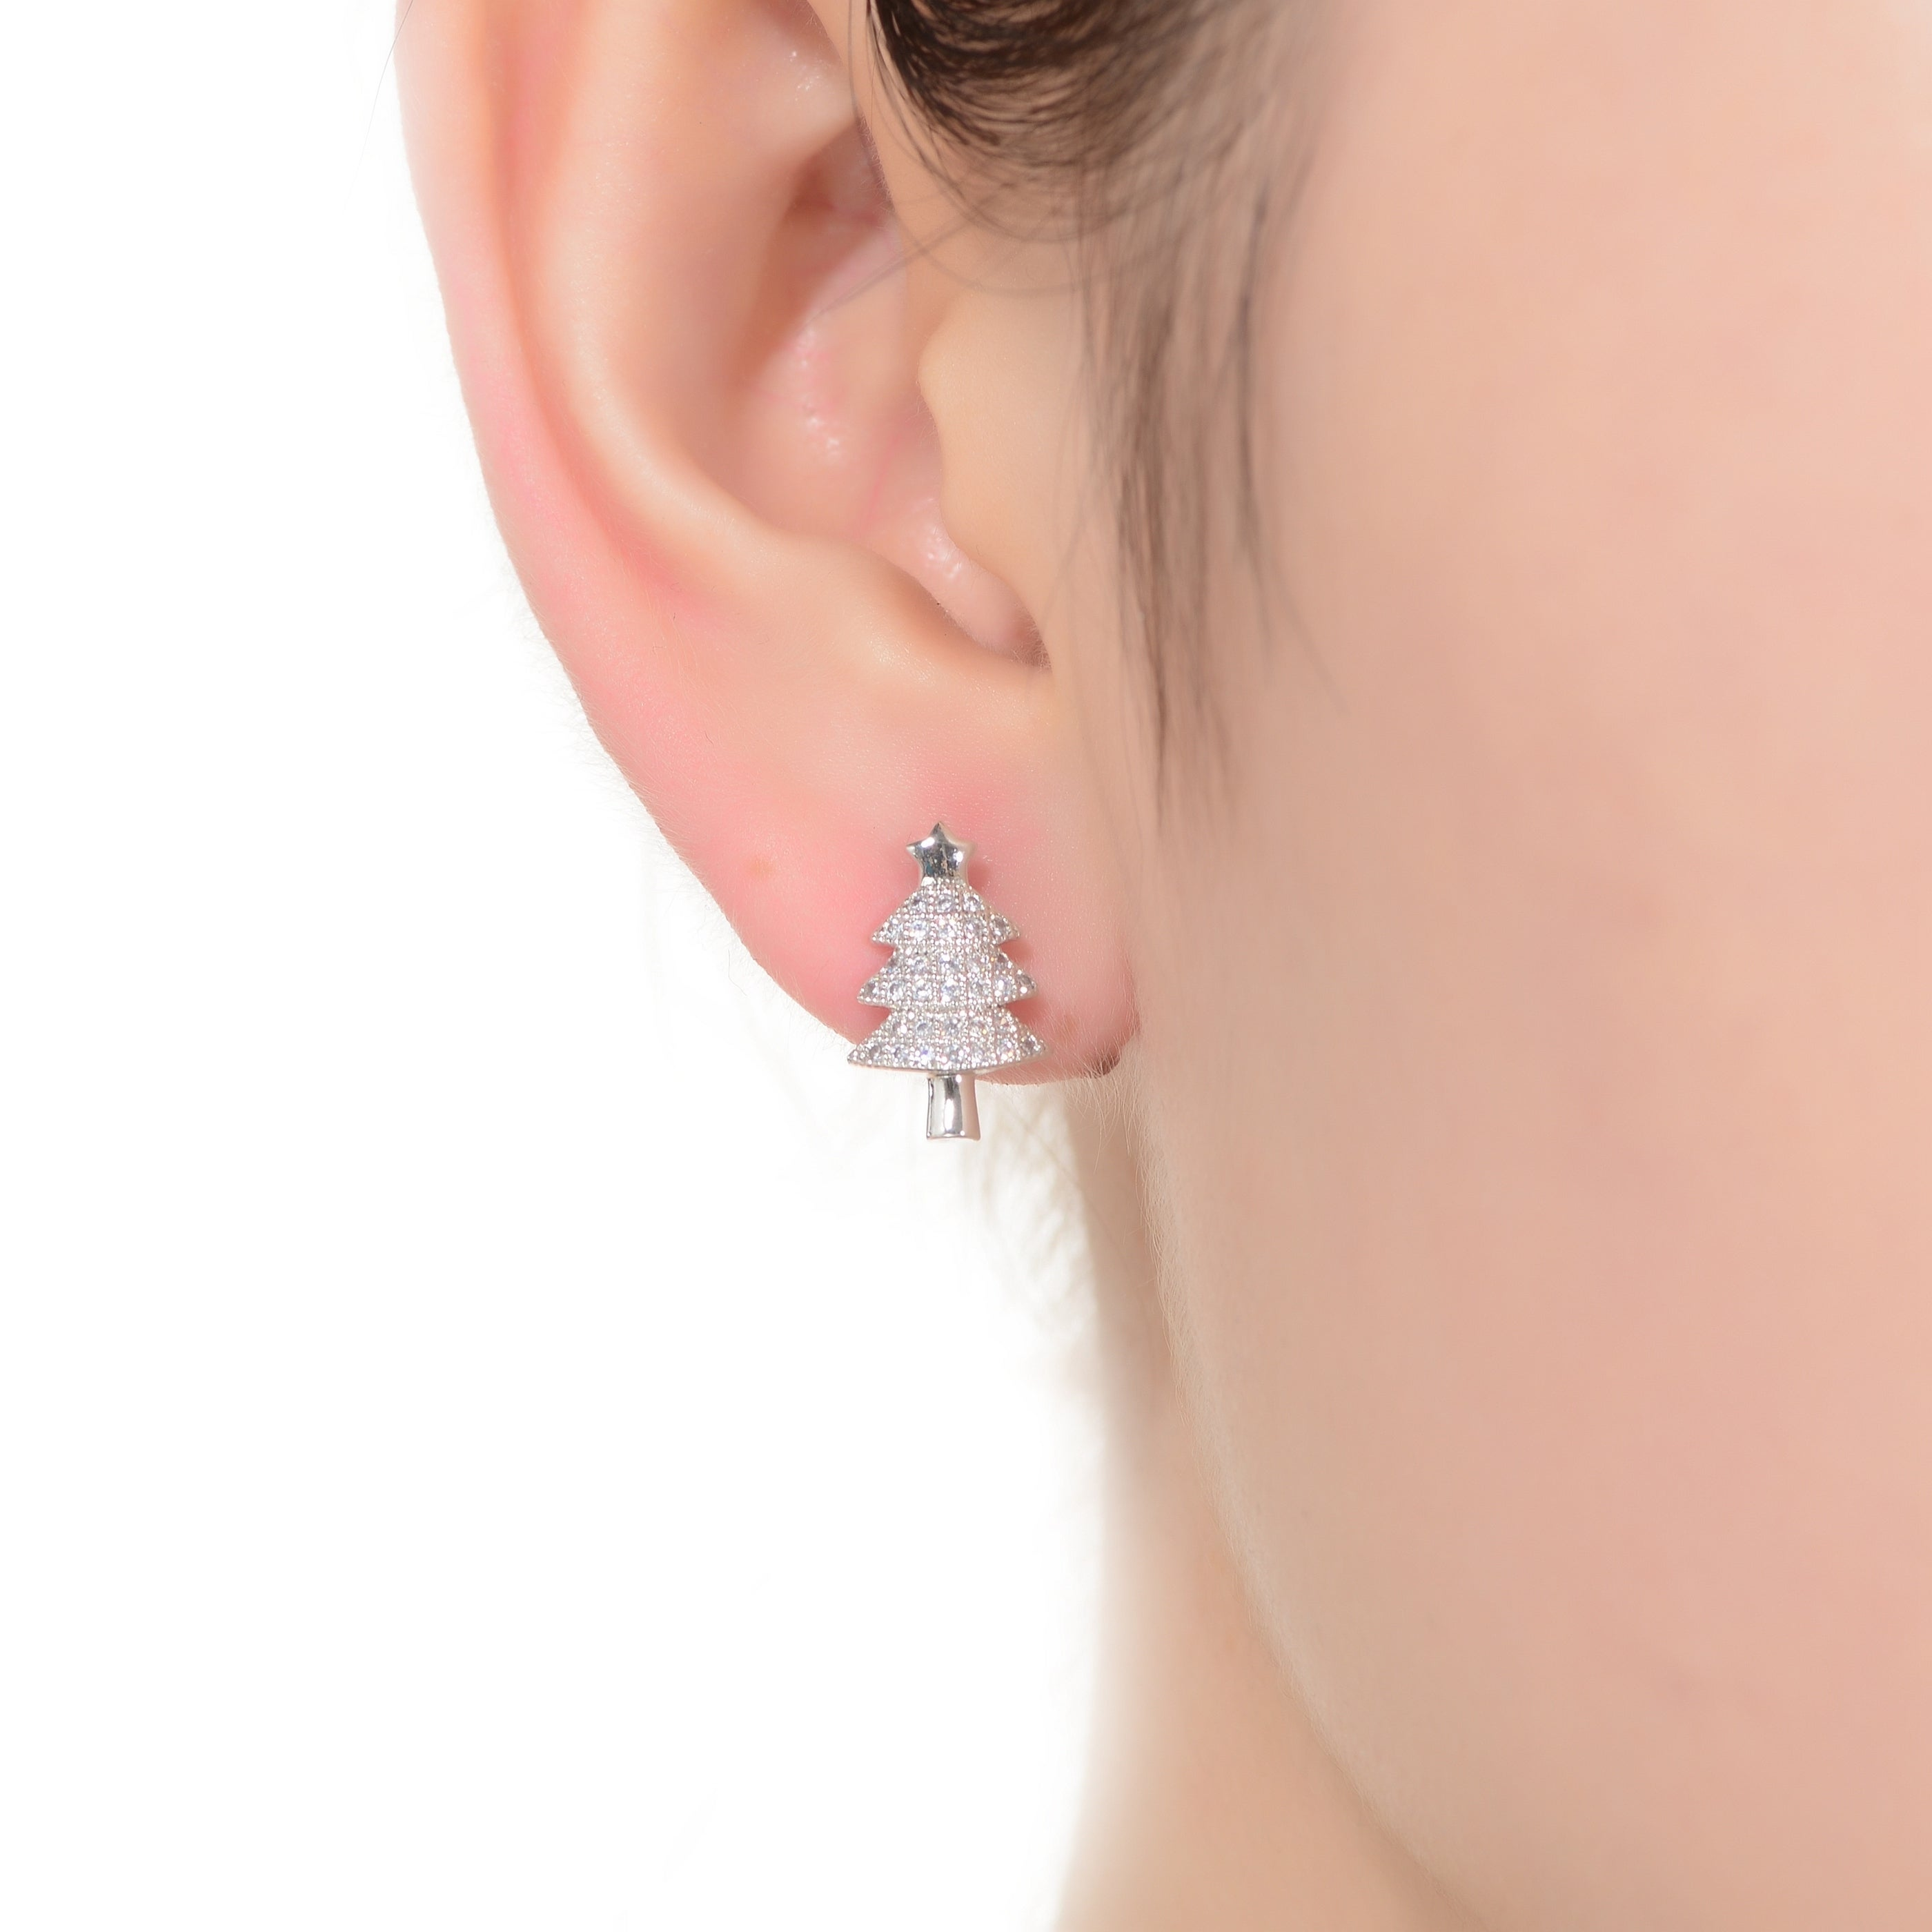 85f1be78c Shop Collette Z Sterling Silver with Rhodium Plated Clear Round Cubic  Zirconia Pave Christmas Tree Earrings - On Sale - Free Shipping On Orders  Over $45 ...